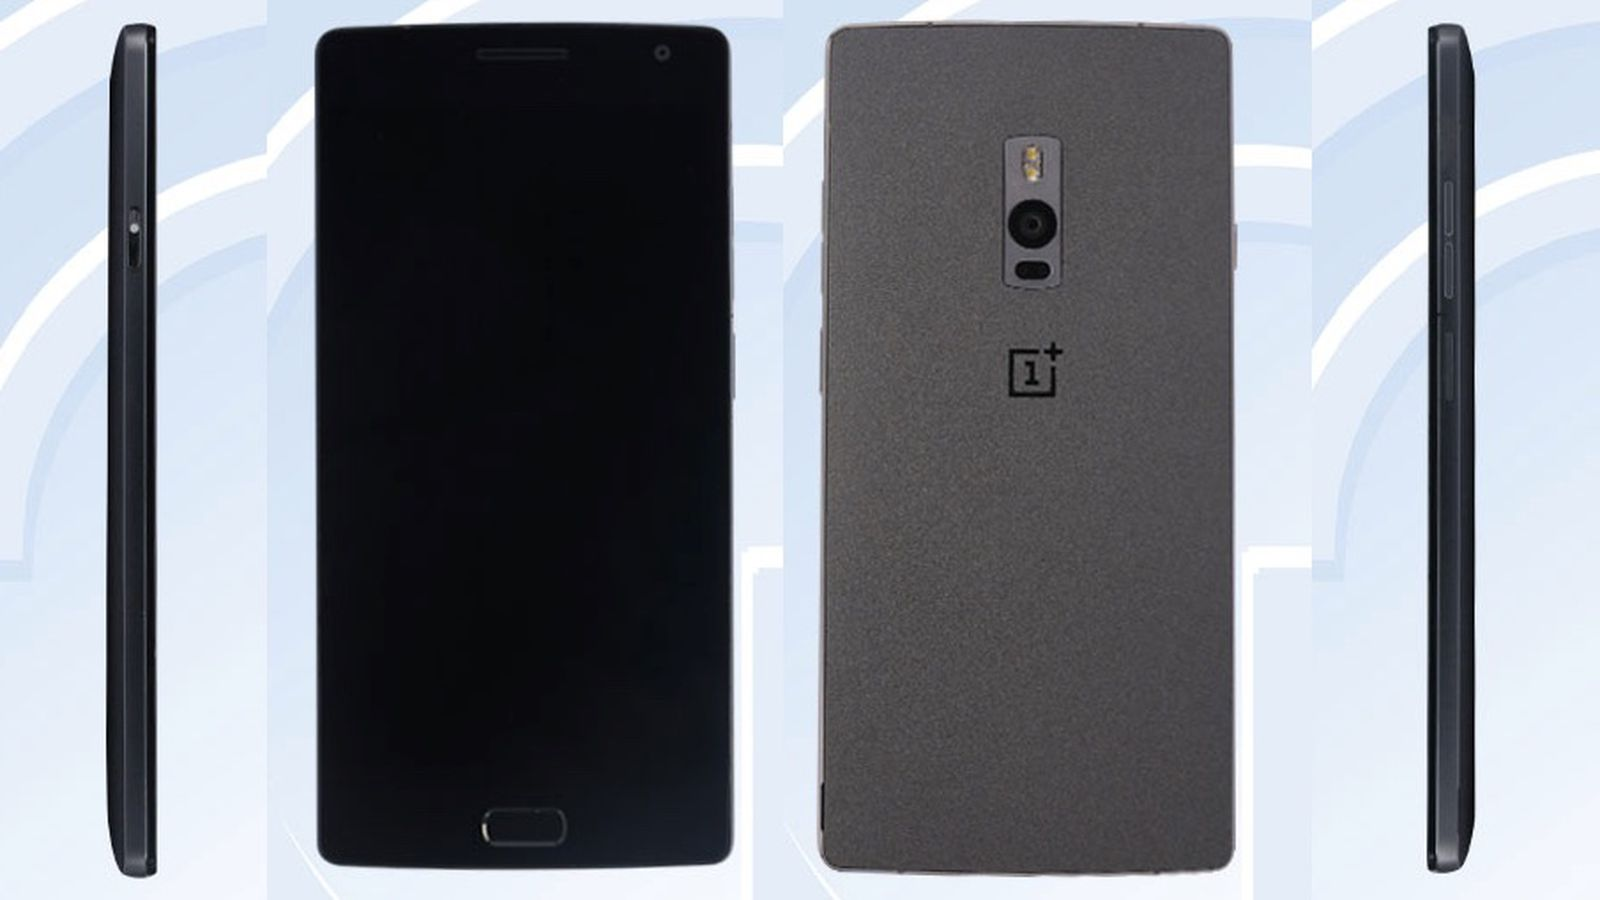 OnePlus 2 smartphone revealed by Chinese regulator ahead ...